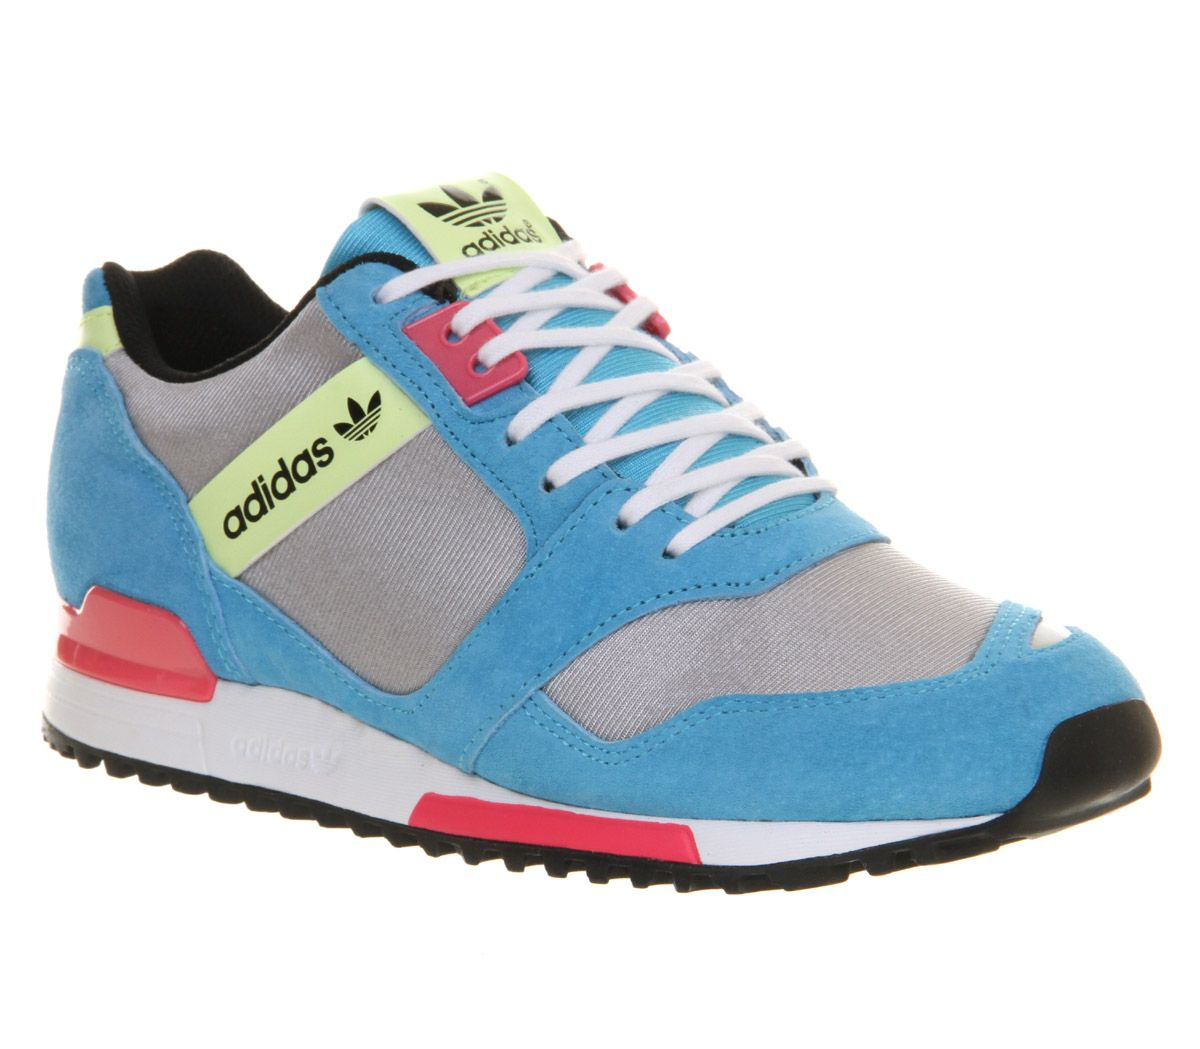 Zx700 contempt trainers